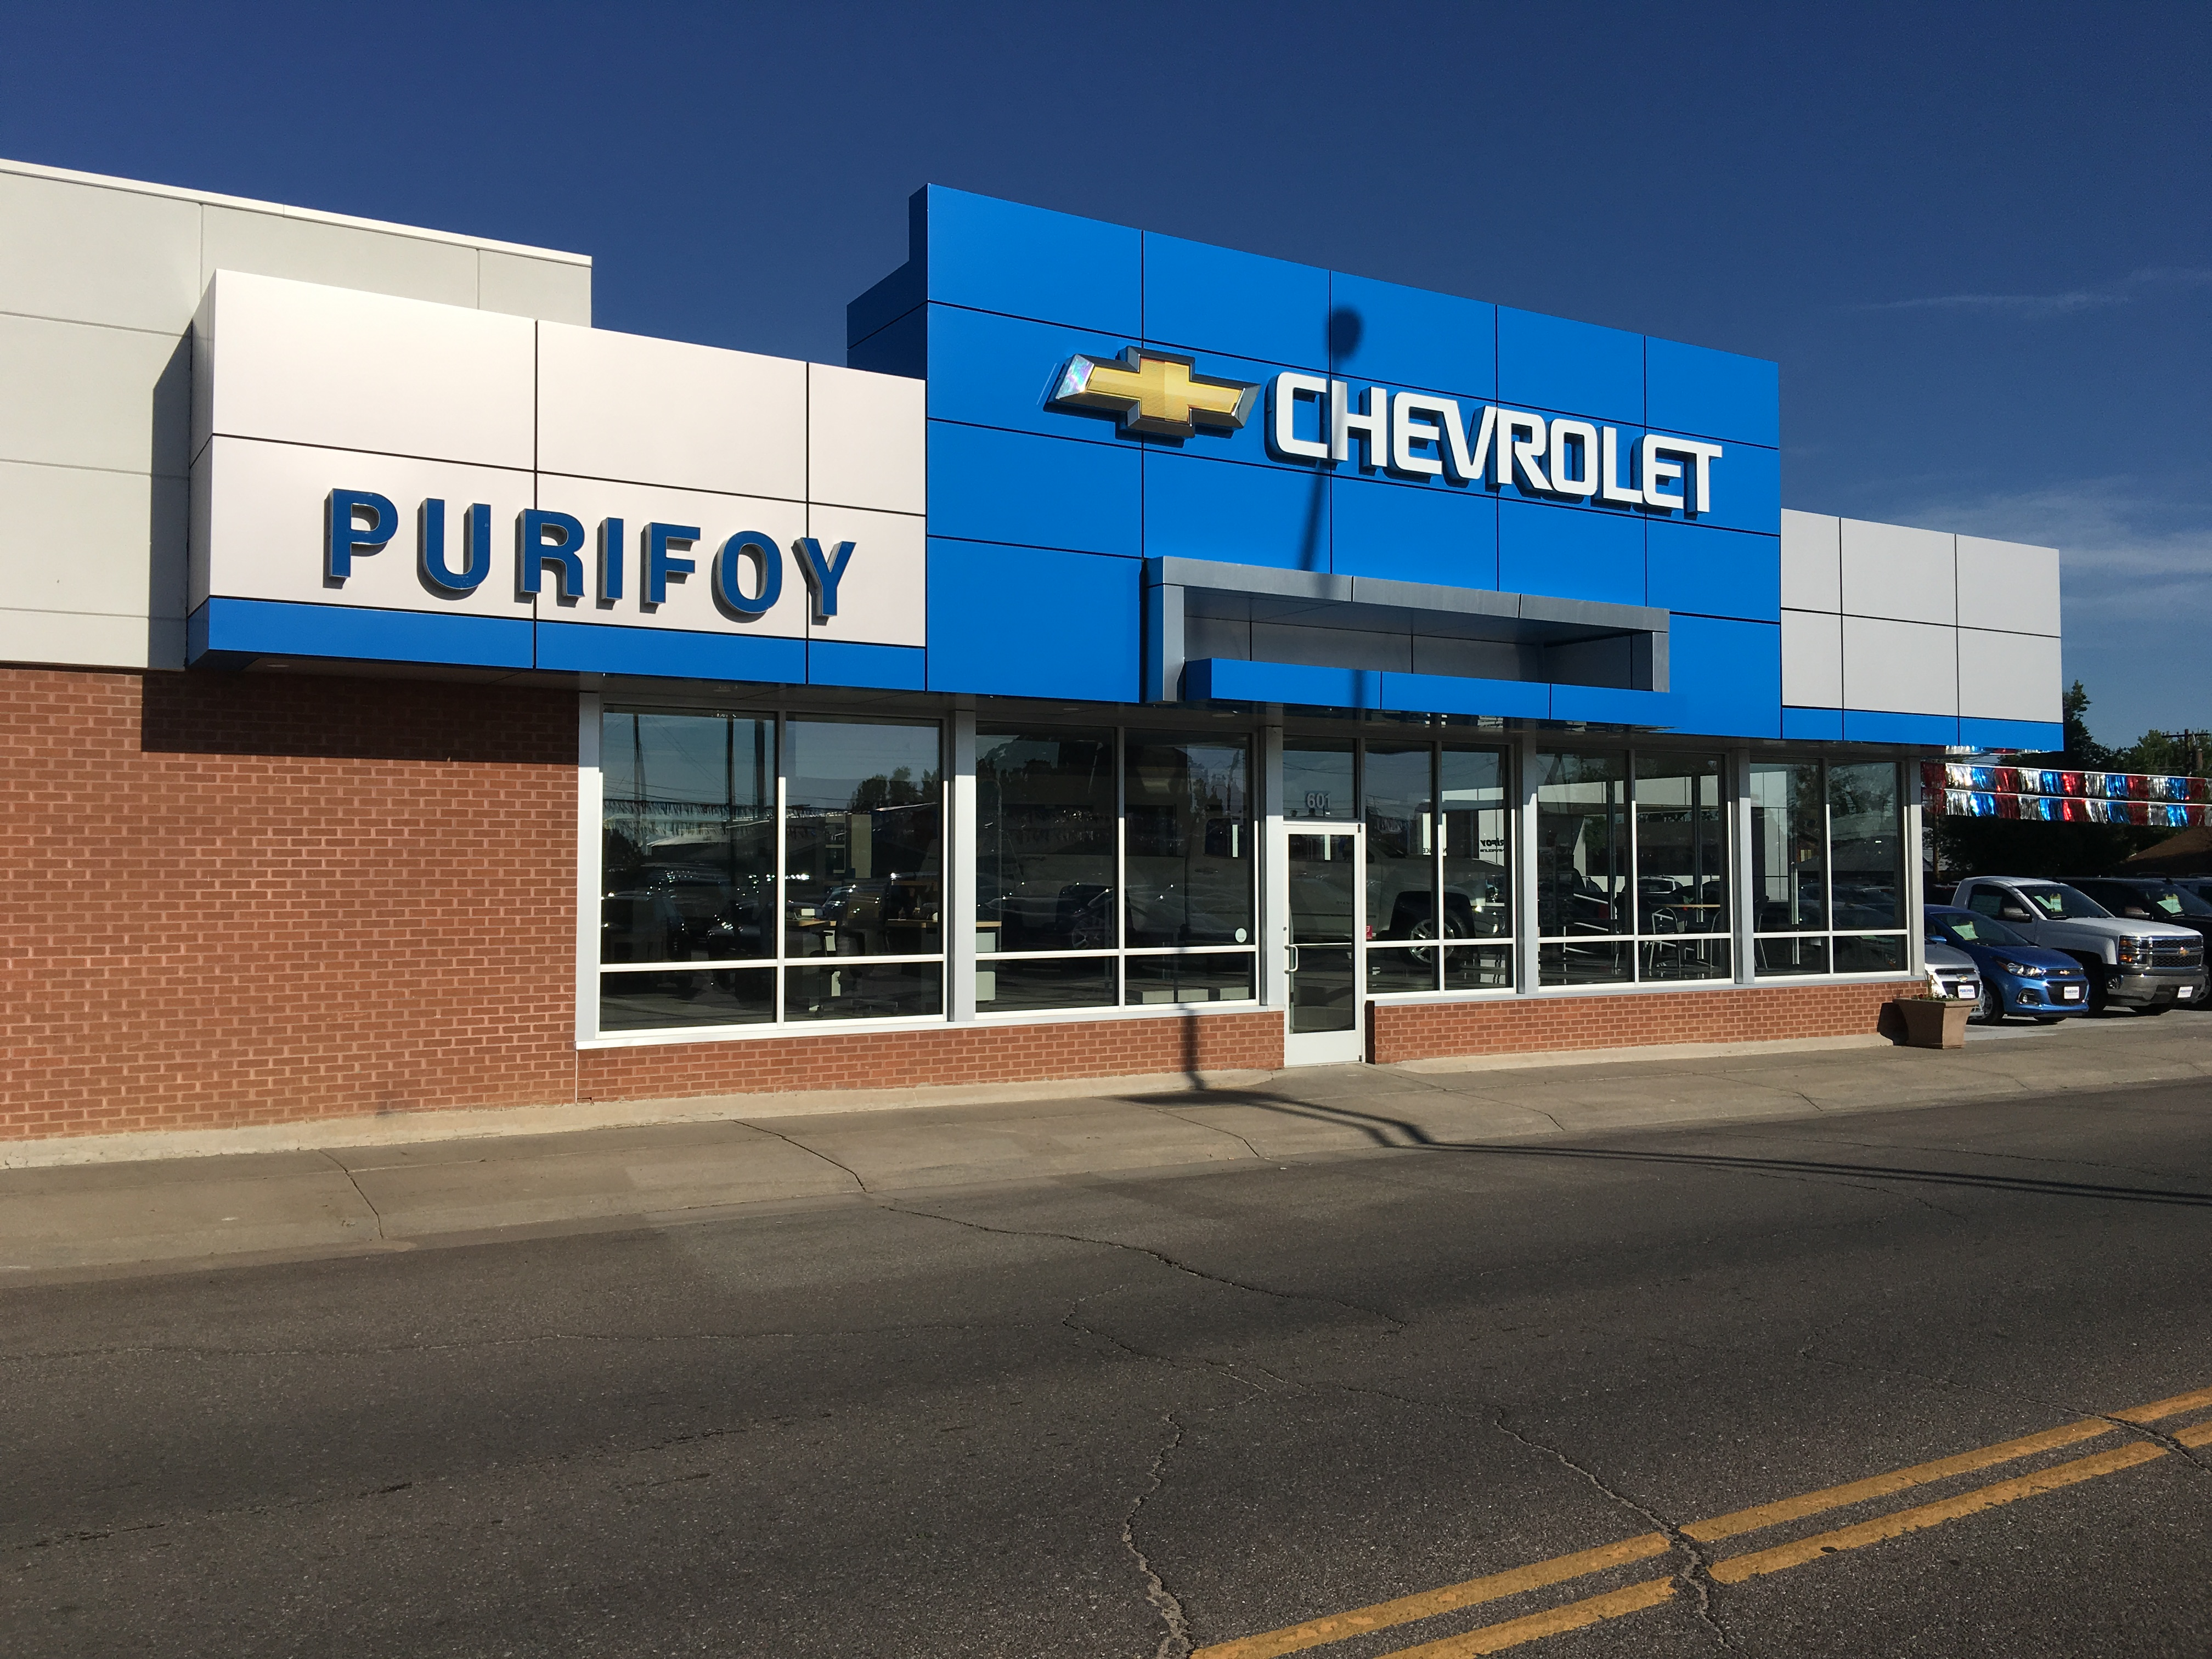 purifoy chevrolet co 601 denver ave fort lupton co 80621 yp com purifoy chevrolet co 601 denver ave